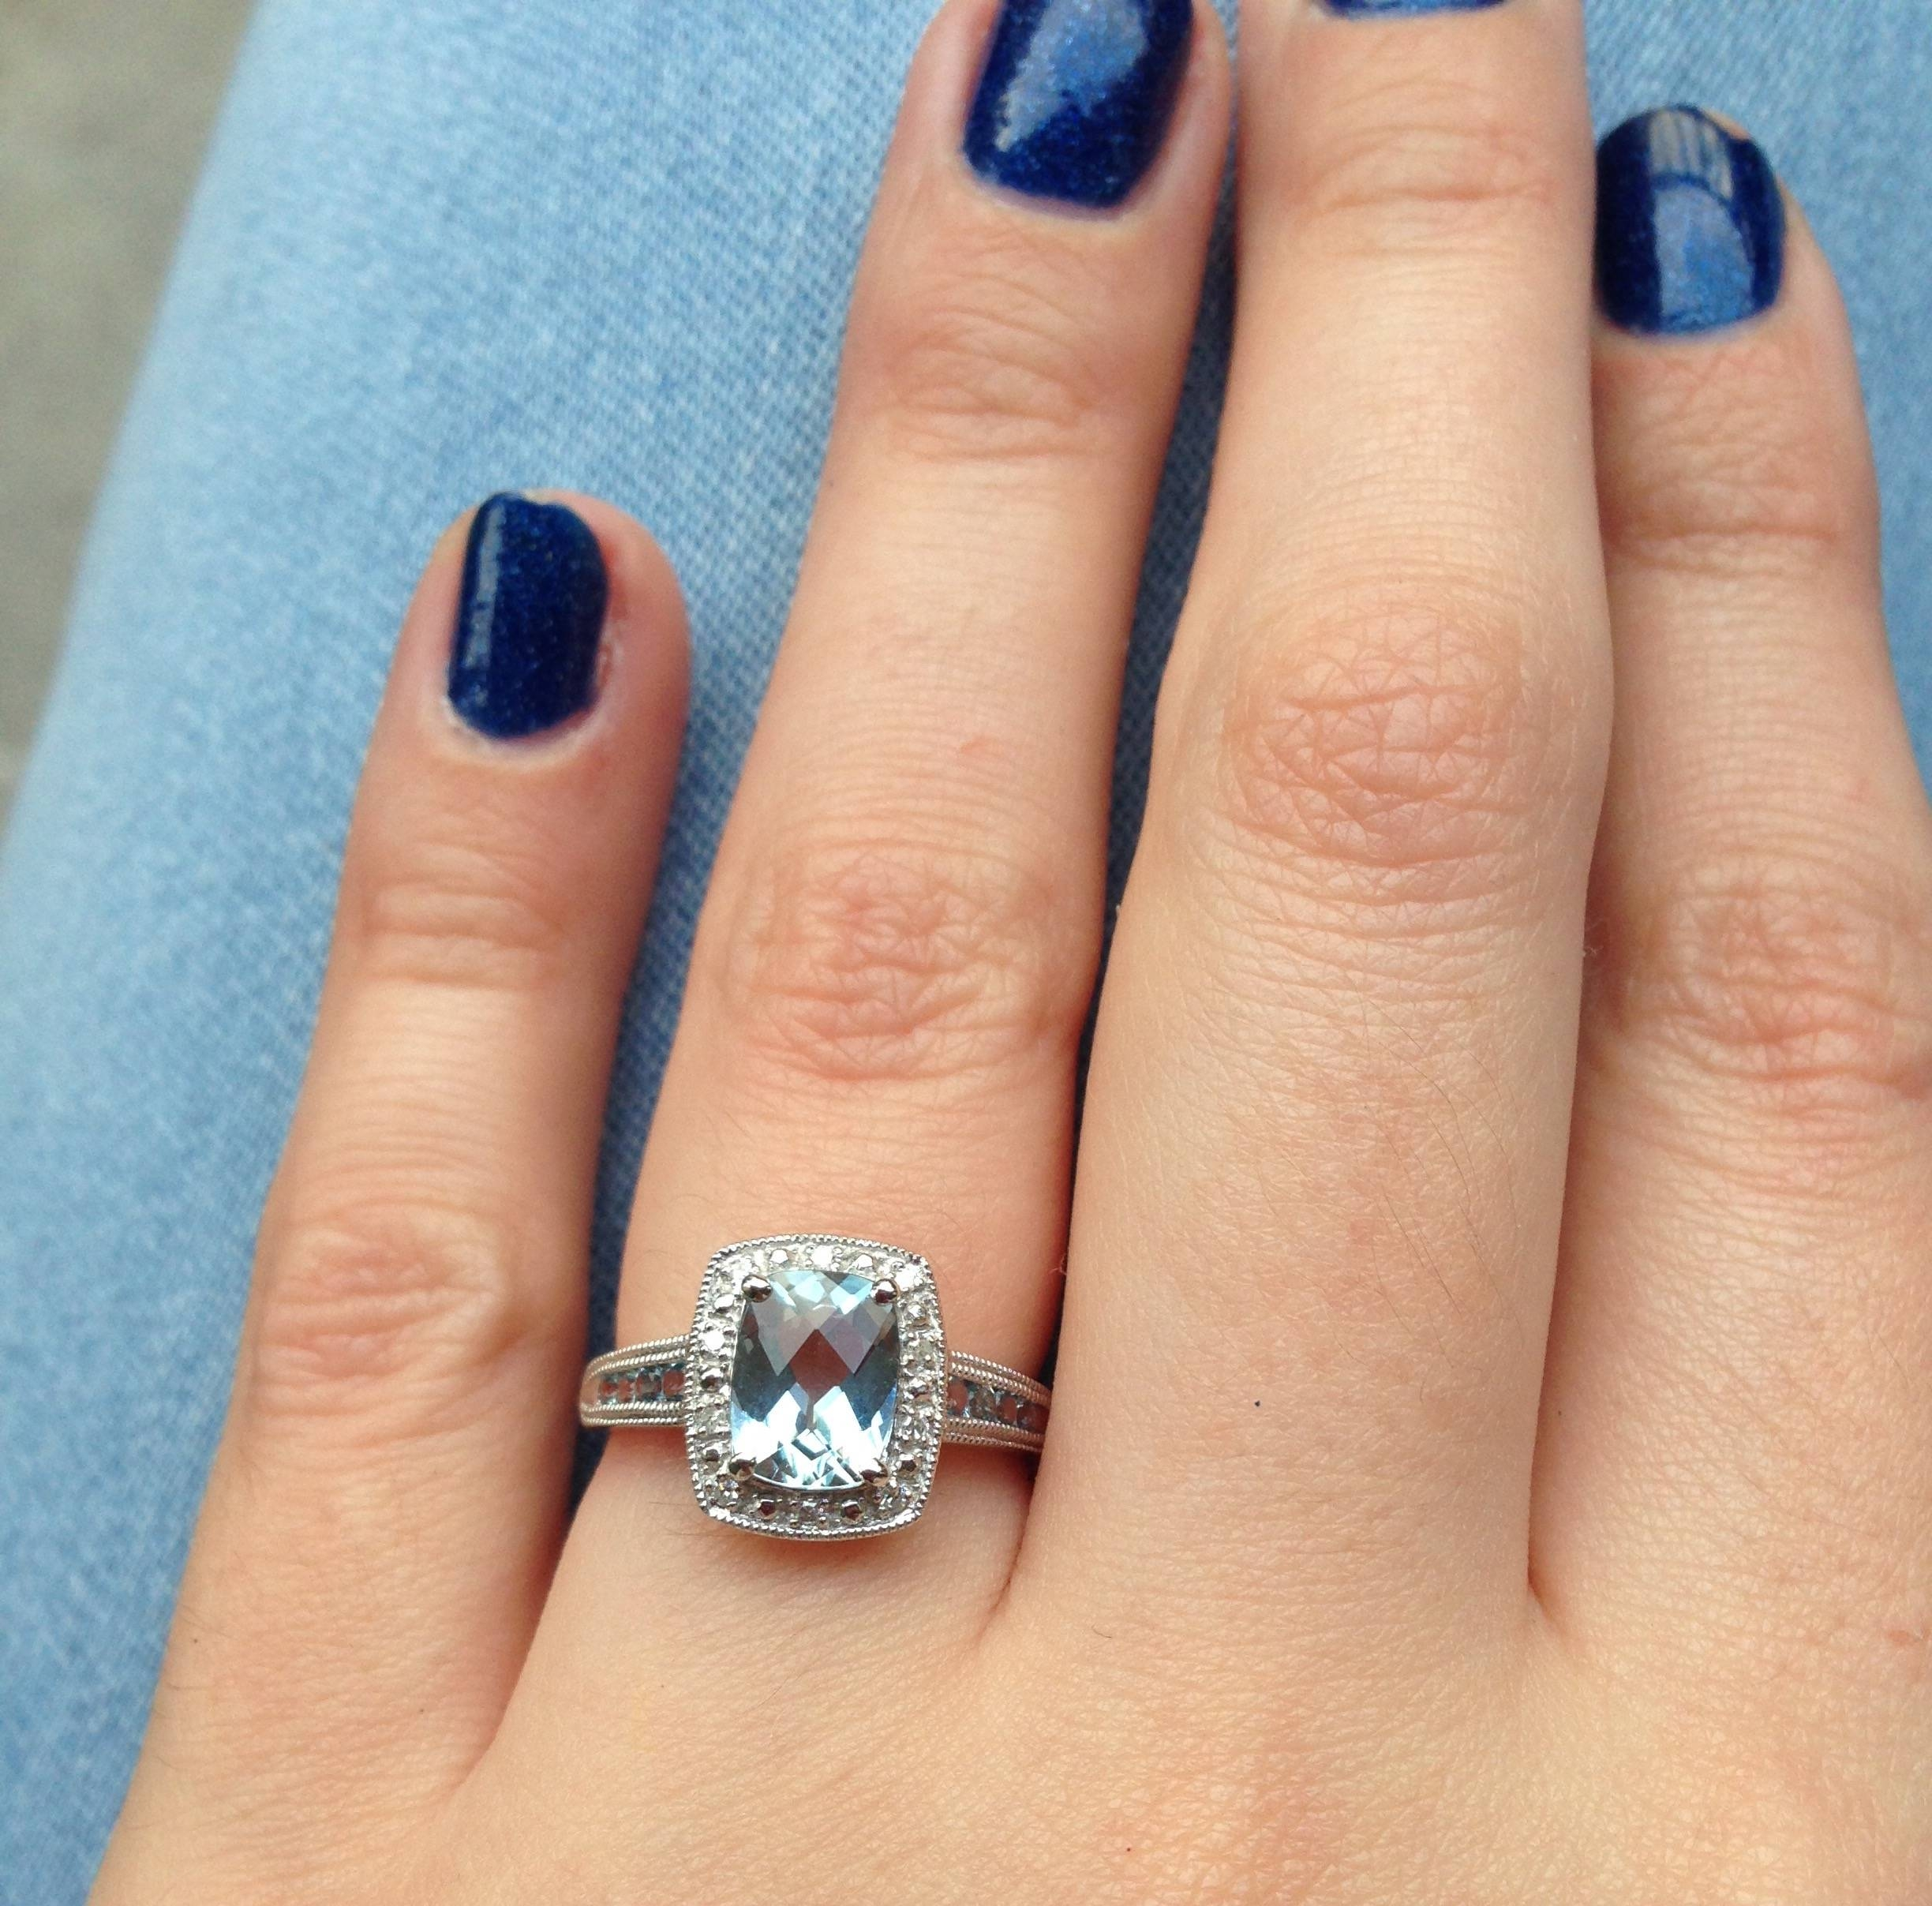 Share Your Non Diamond Engagement Rings! – Weddingbee In Weddingbee Engagement Rings (View 11 of 15)